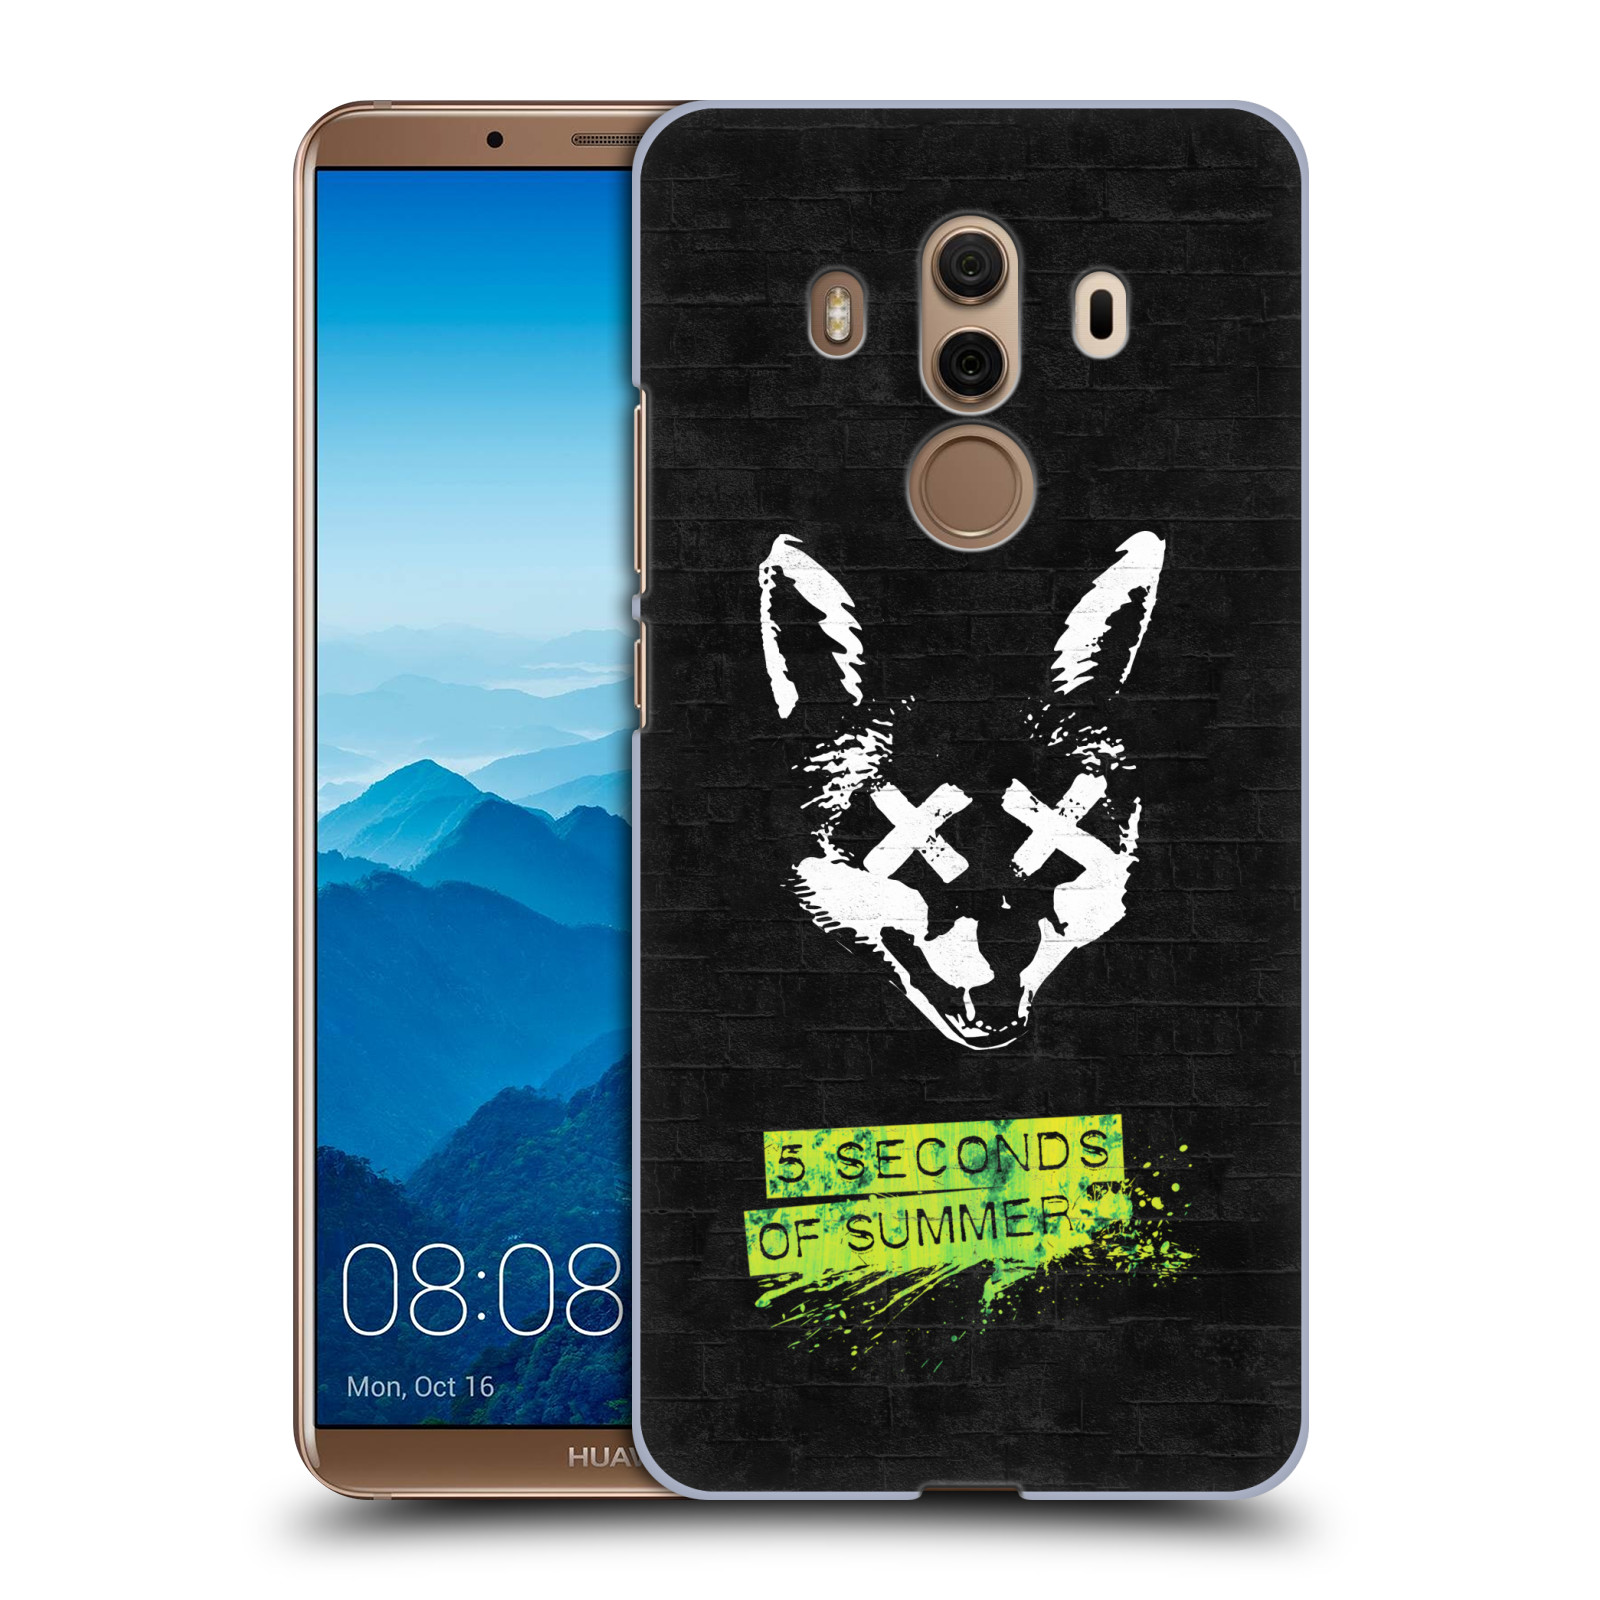 Plastové pouzdro na mobil Huawei Mate 10 Pro - Head Case - 5 Seconds of Summer - Fox